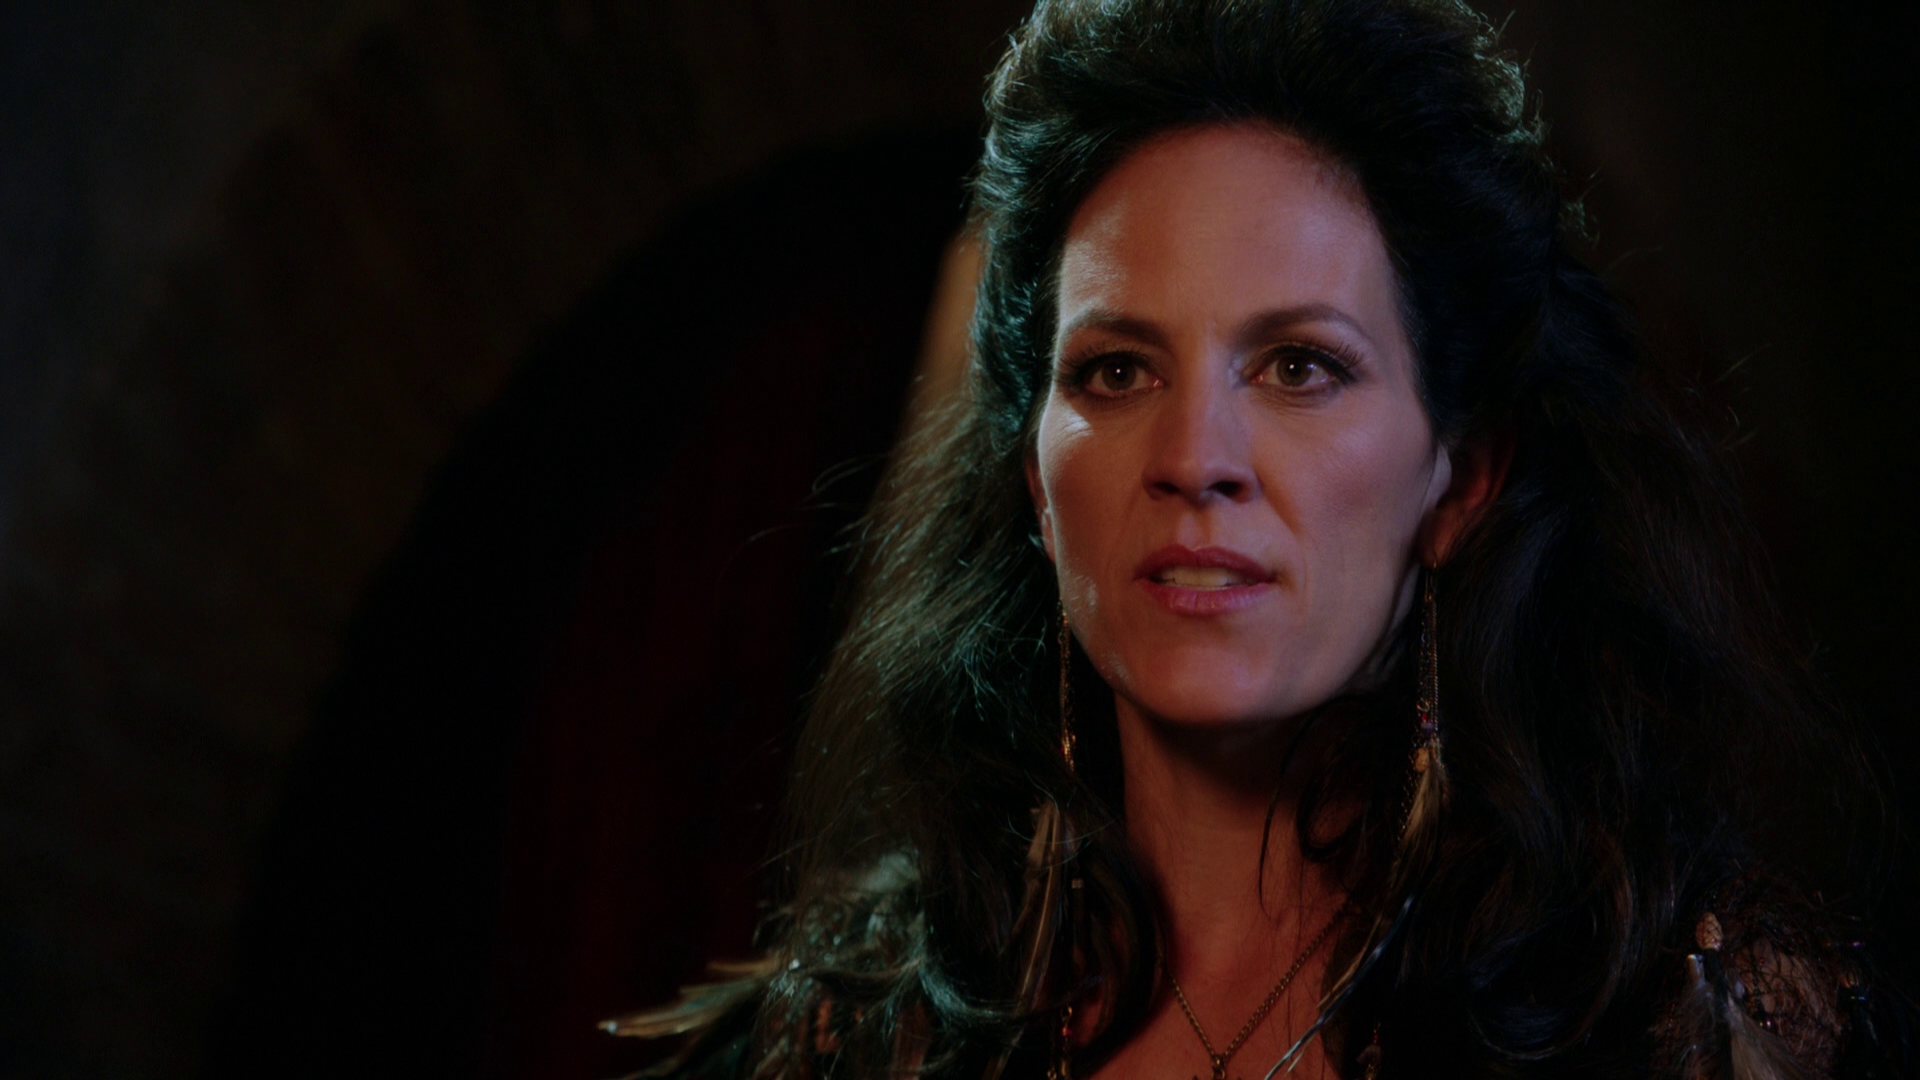 anita lucas | once upon a time wiki | fandom powered by wikia